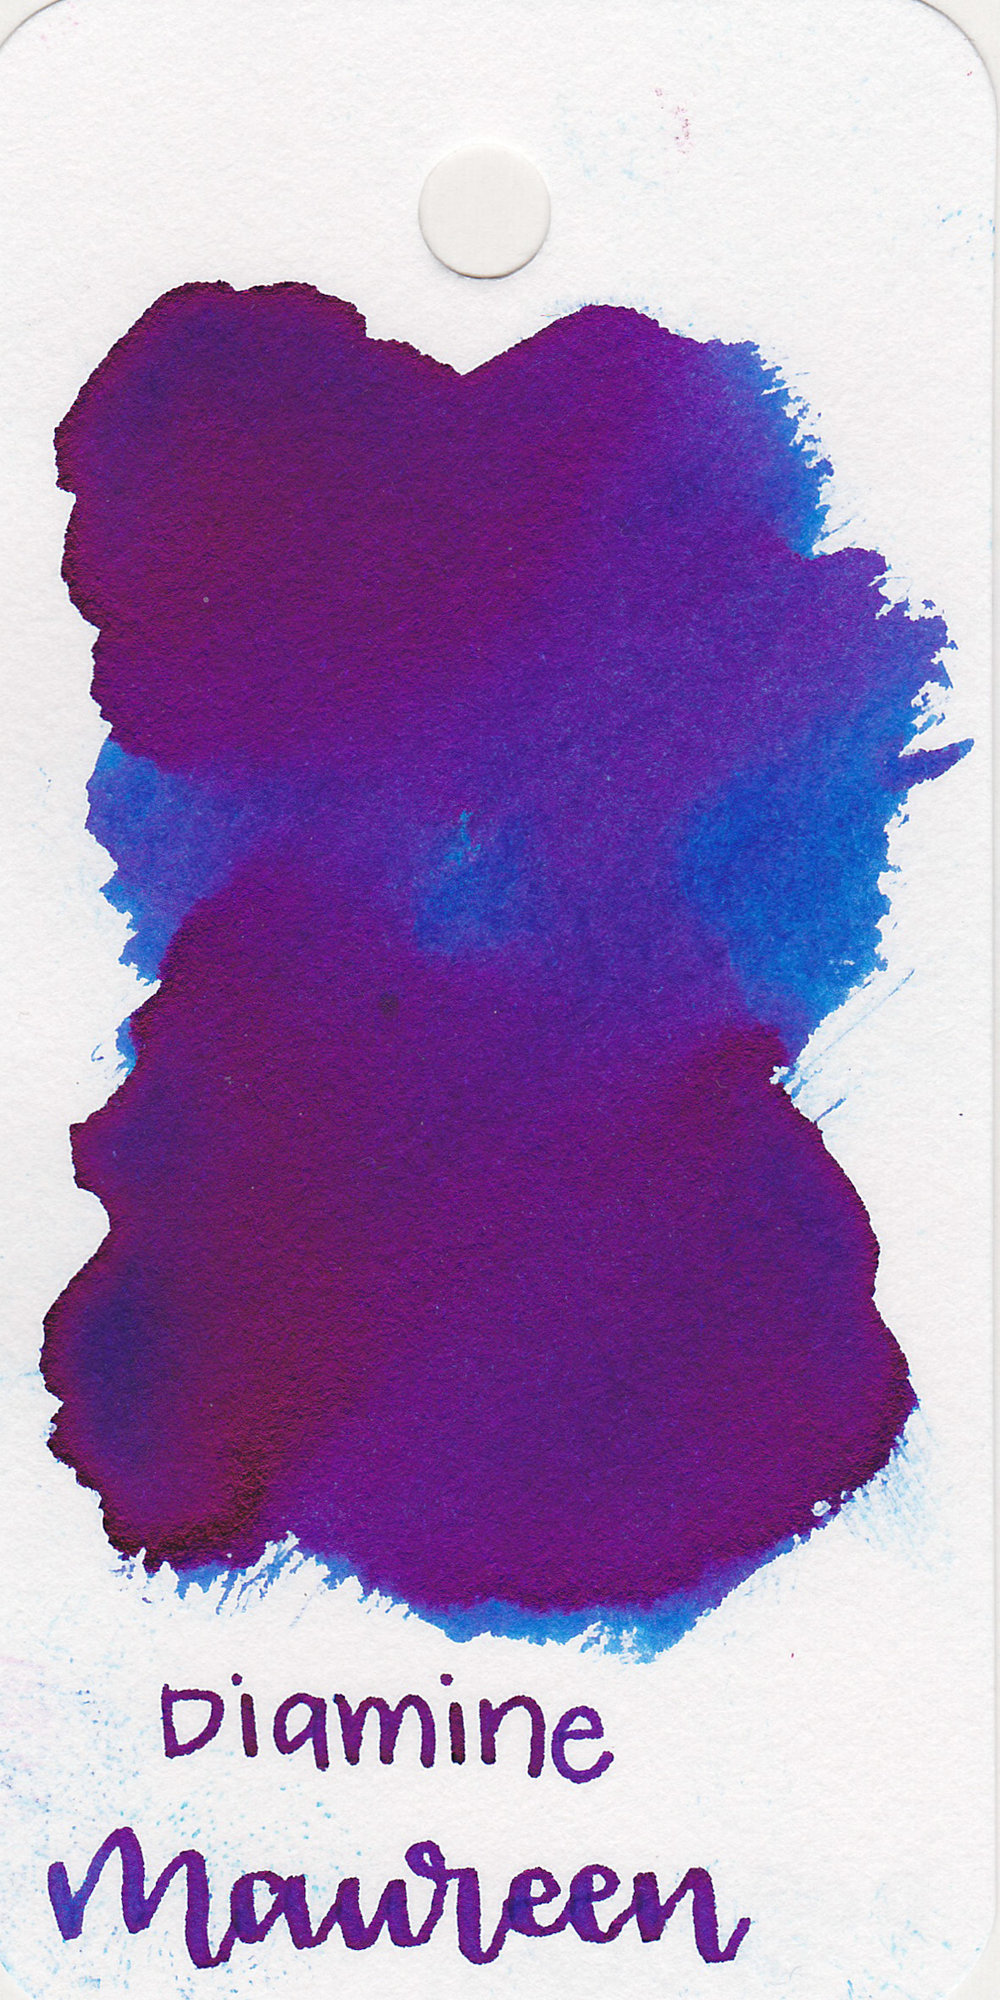 The color: - Maureen is a medium bright blue with a ton of dark pinkish/red sheen.